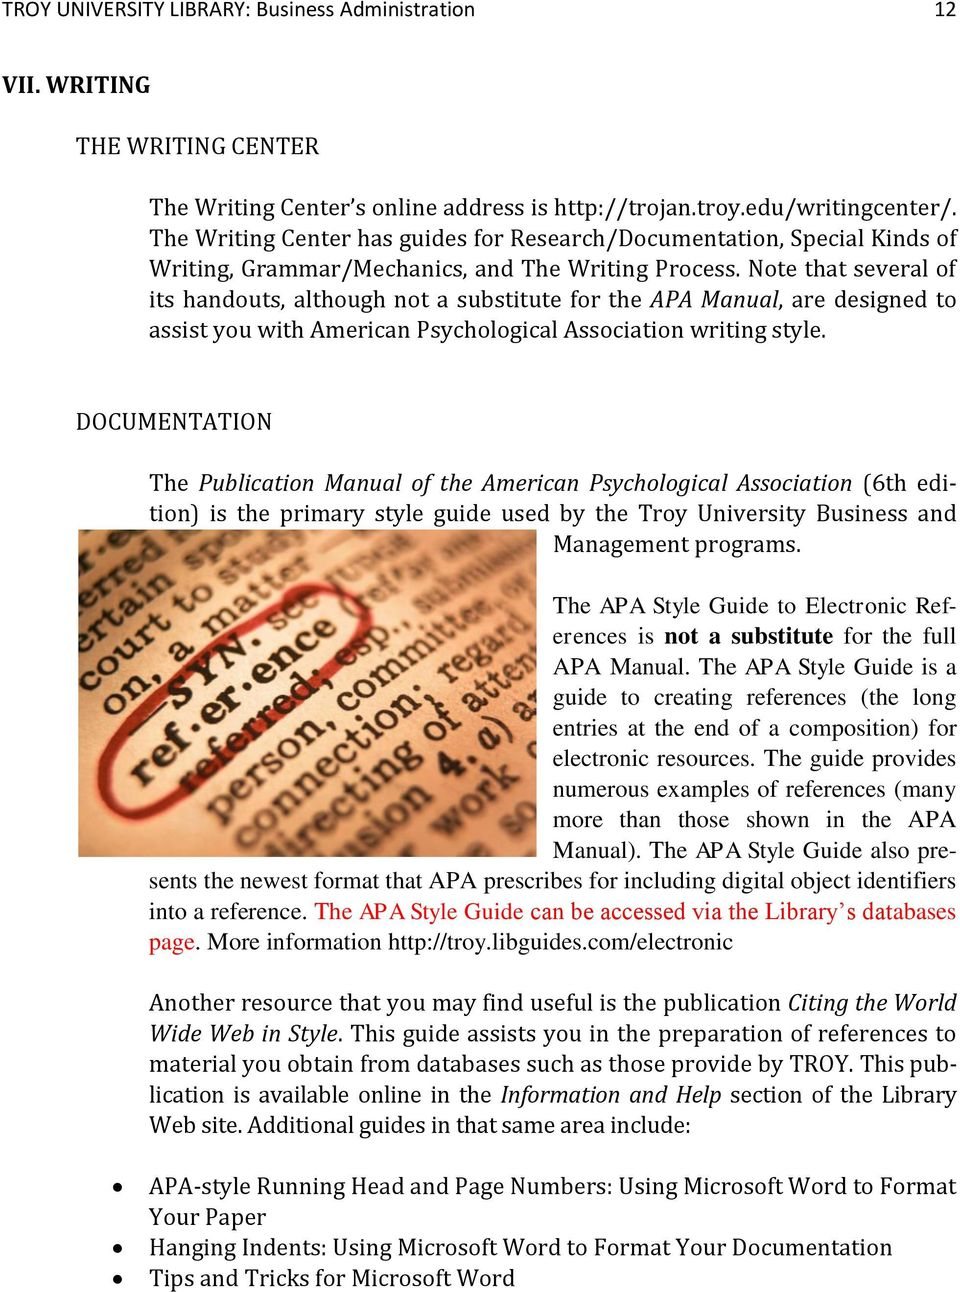 Note that several of its handouts, although not a substitute for the APA Manual, are designed to assist you with American Psychological Association writing style.